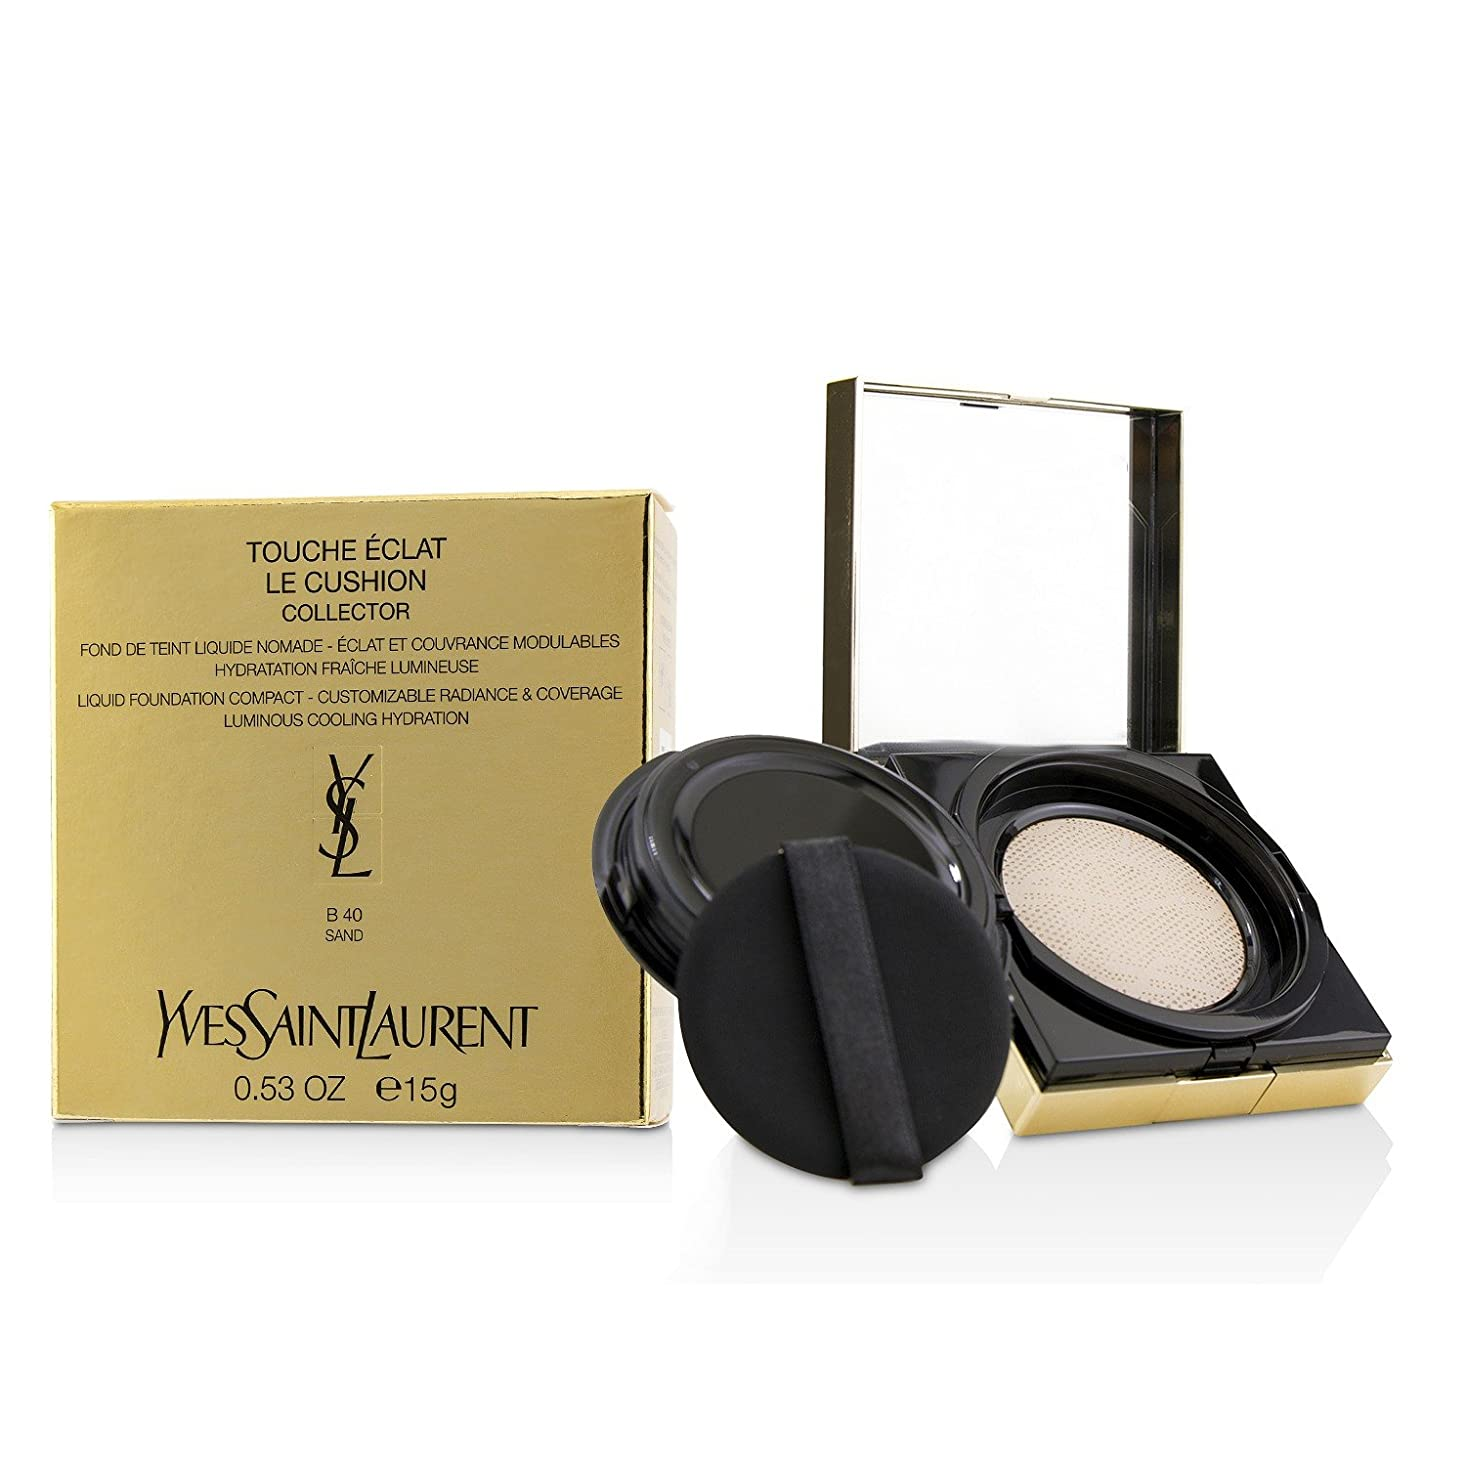 カニフィールド避難するイヴサンローラン Touche Eclat Le Cushion Liquid Foundation Compact - #B40 Sand (Collector) 15g/0.53oz並行輸入品